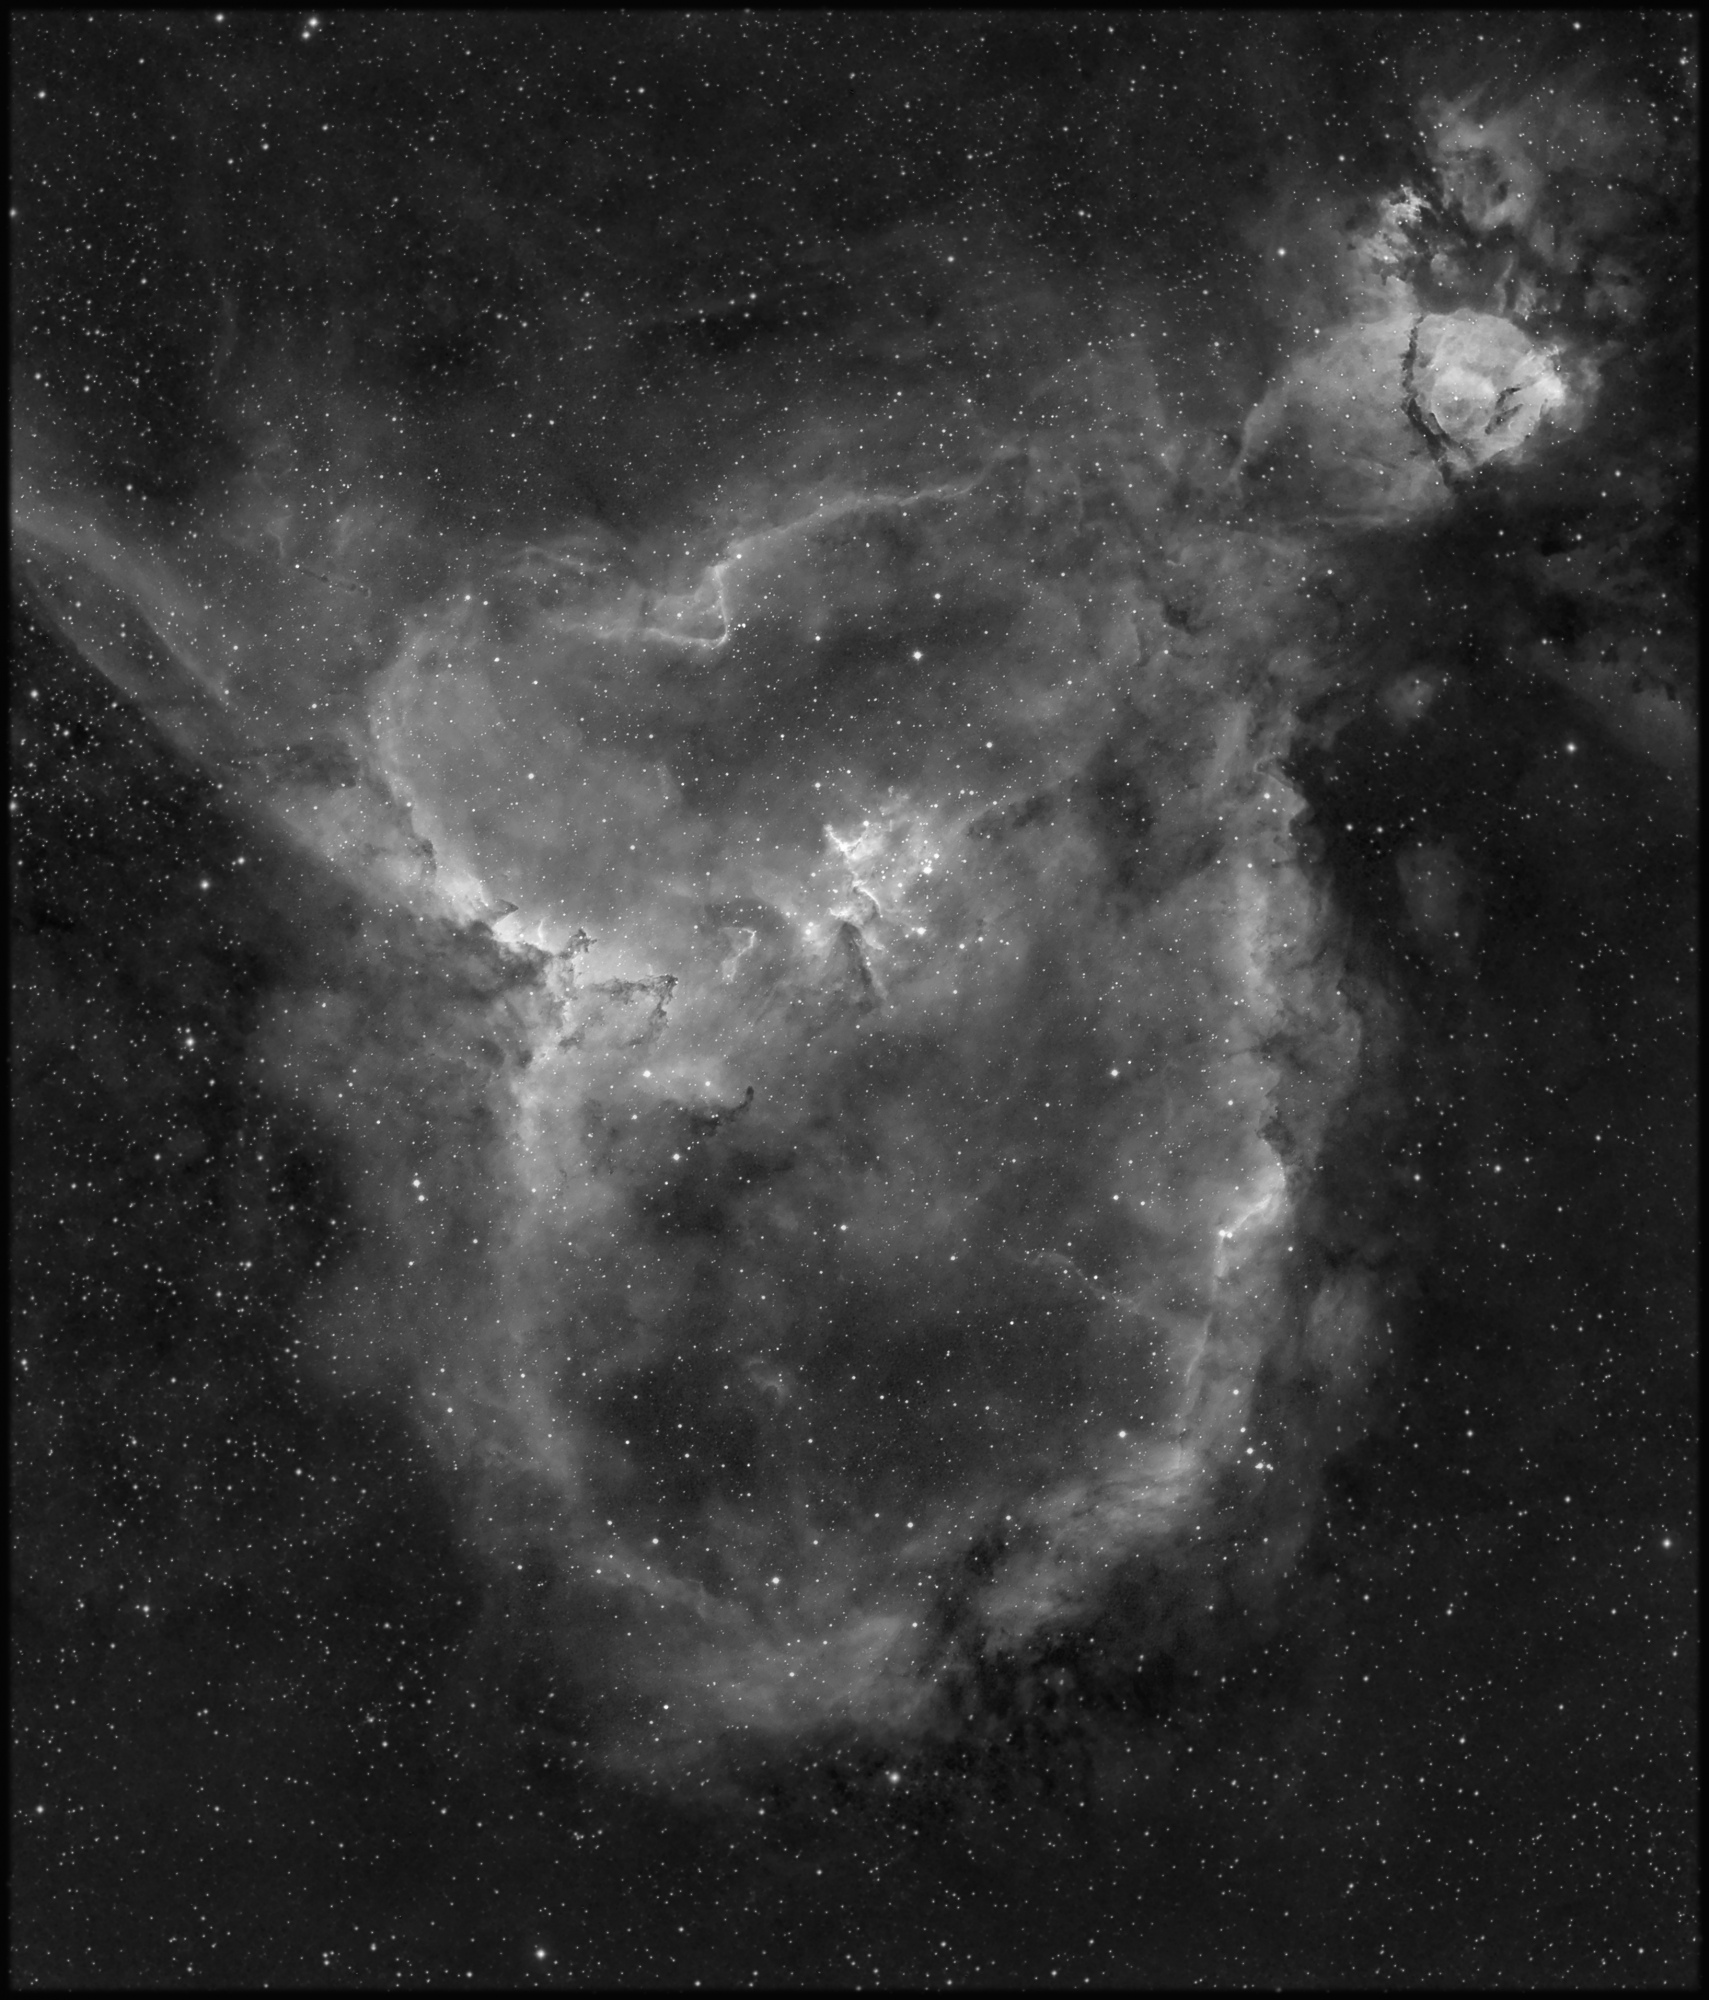 ic1805_Ha_mosaic_2.jpg